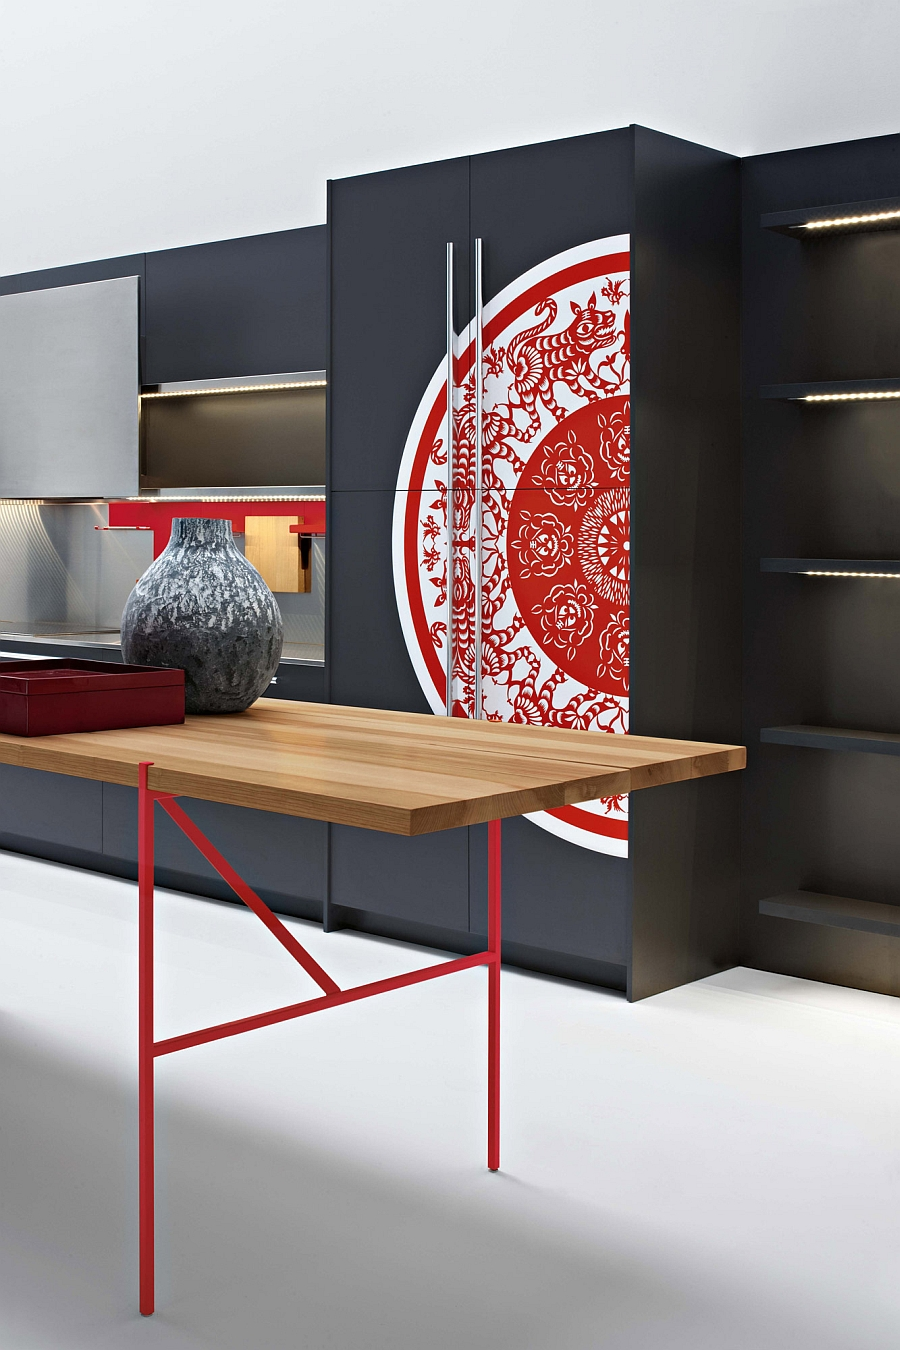 Bold red additions shine through thanks to the neutral backdrop